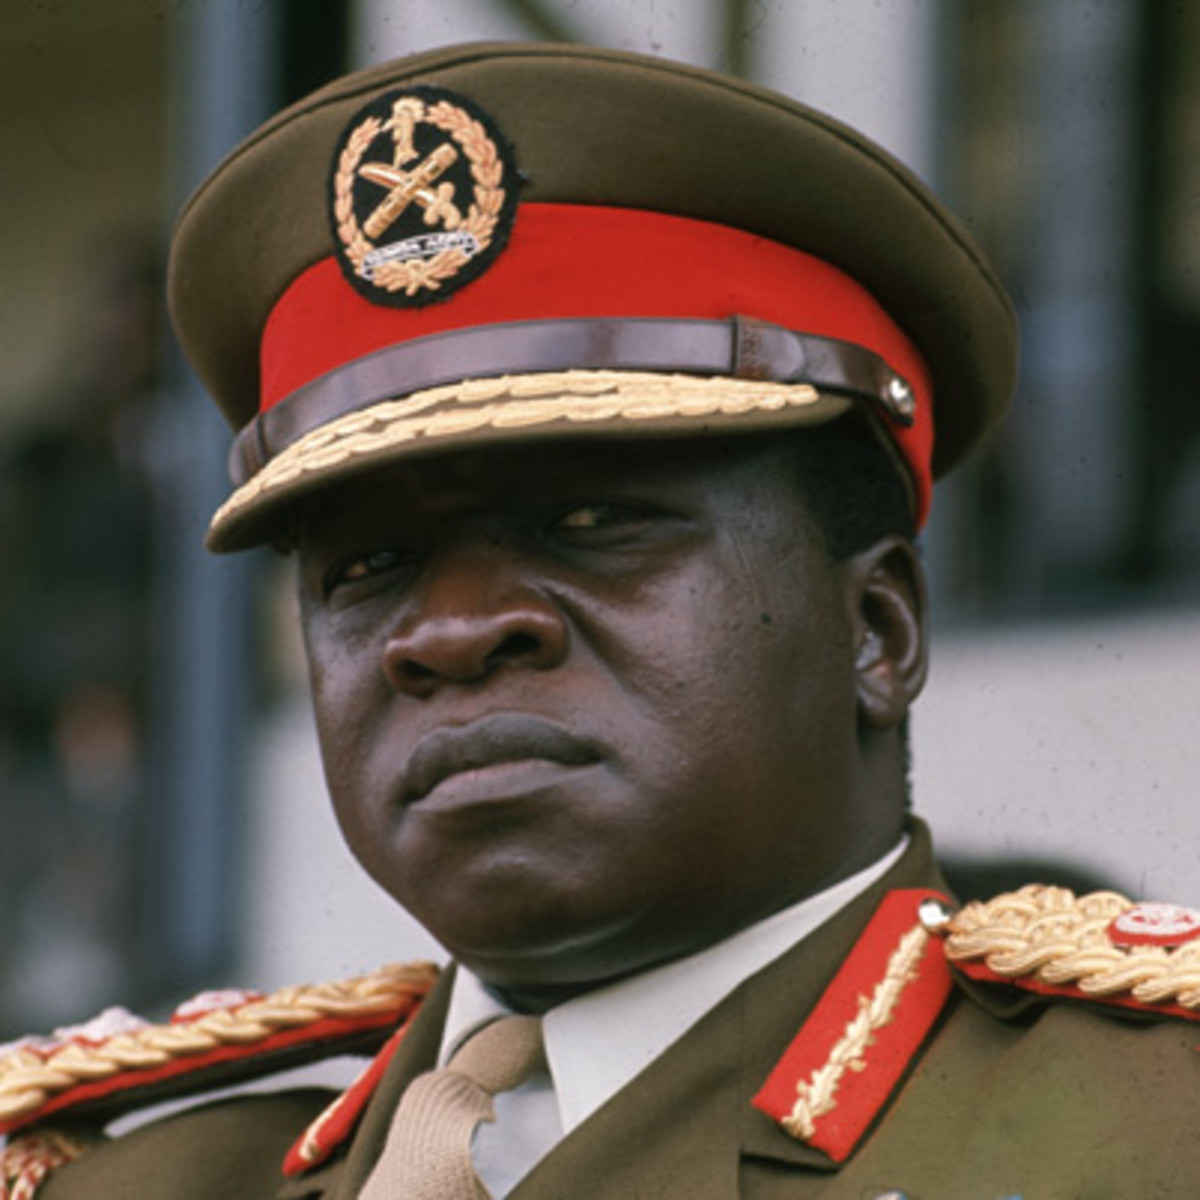 biography of idi amin dada essay He was part of the kakwa tribe, a tiny muslim tribe in northwestern uganda (idi amin dada) idi amin received little formal education, attending school only through the fourth grade although he had little education, he joined the king's african rifles, kar, in 1943 (amin, idi) the kar were the british african colonial troops idi amin served with the kar in burma, somalia, kenya, and uganda.